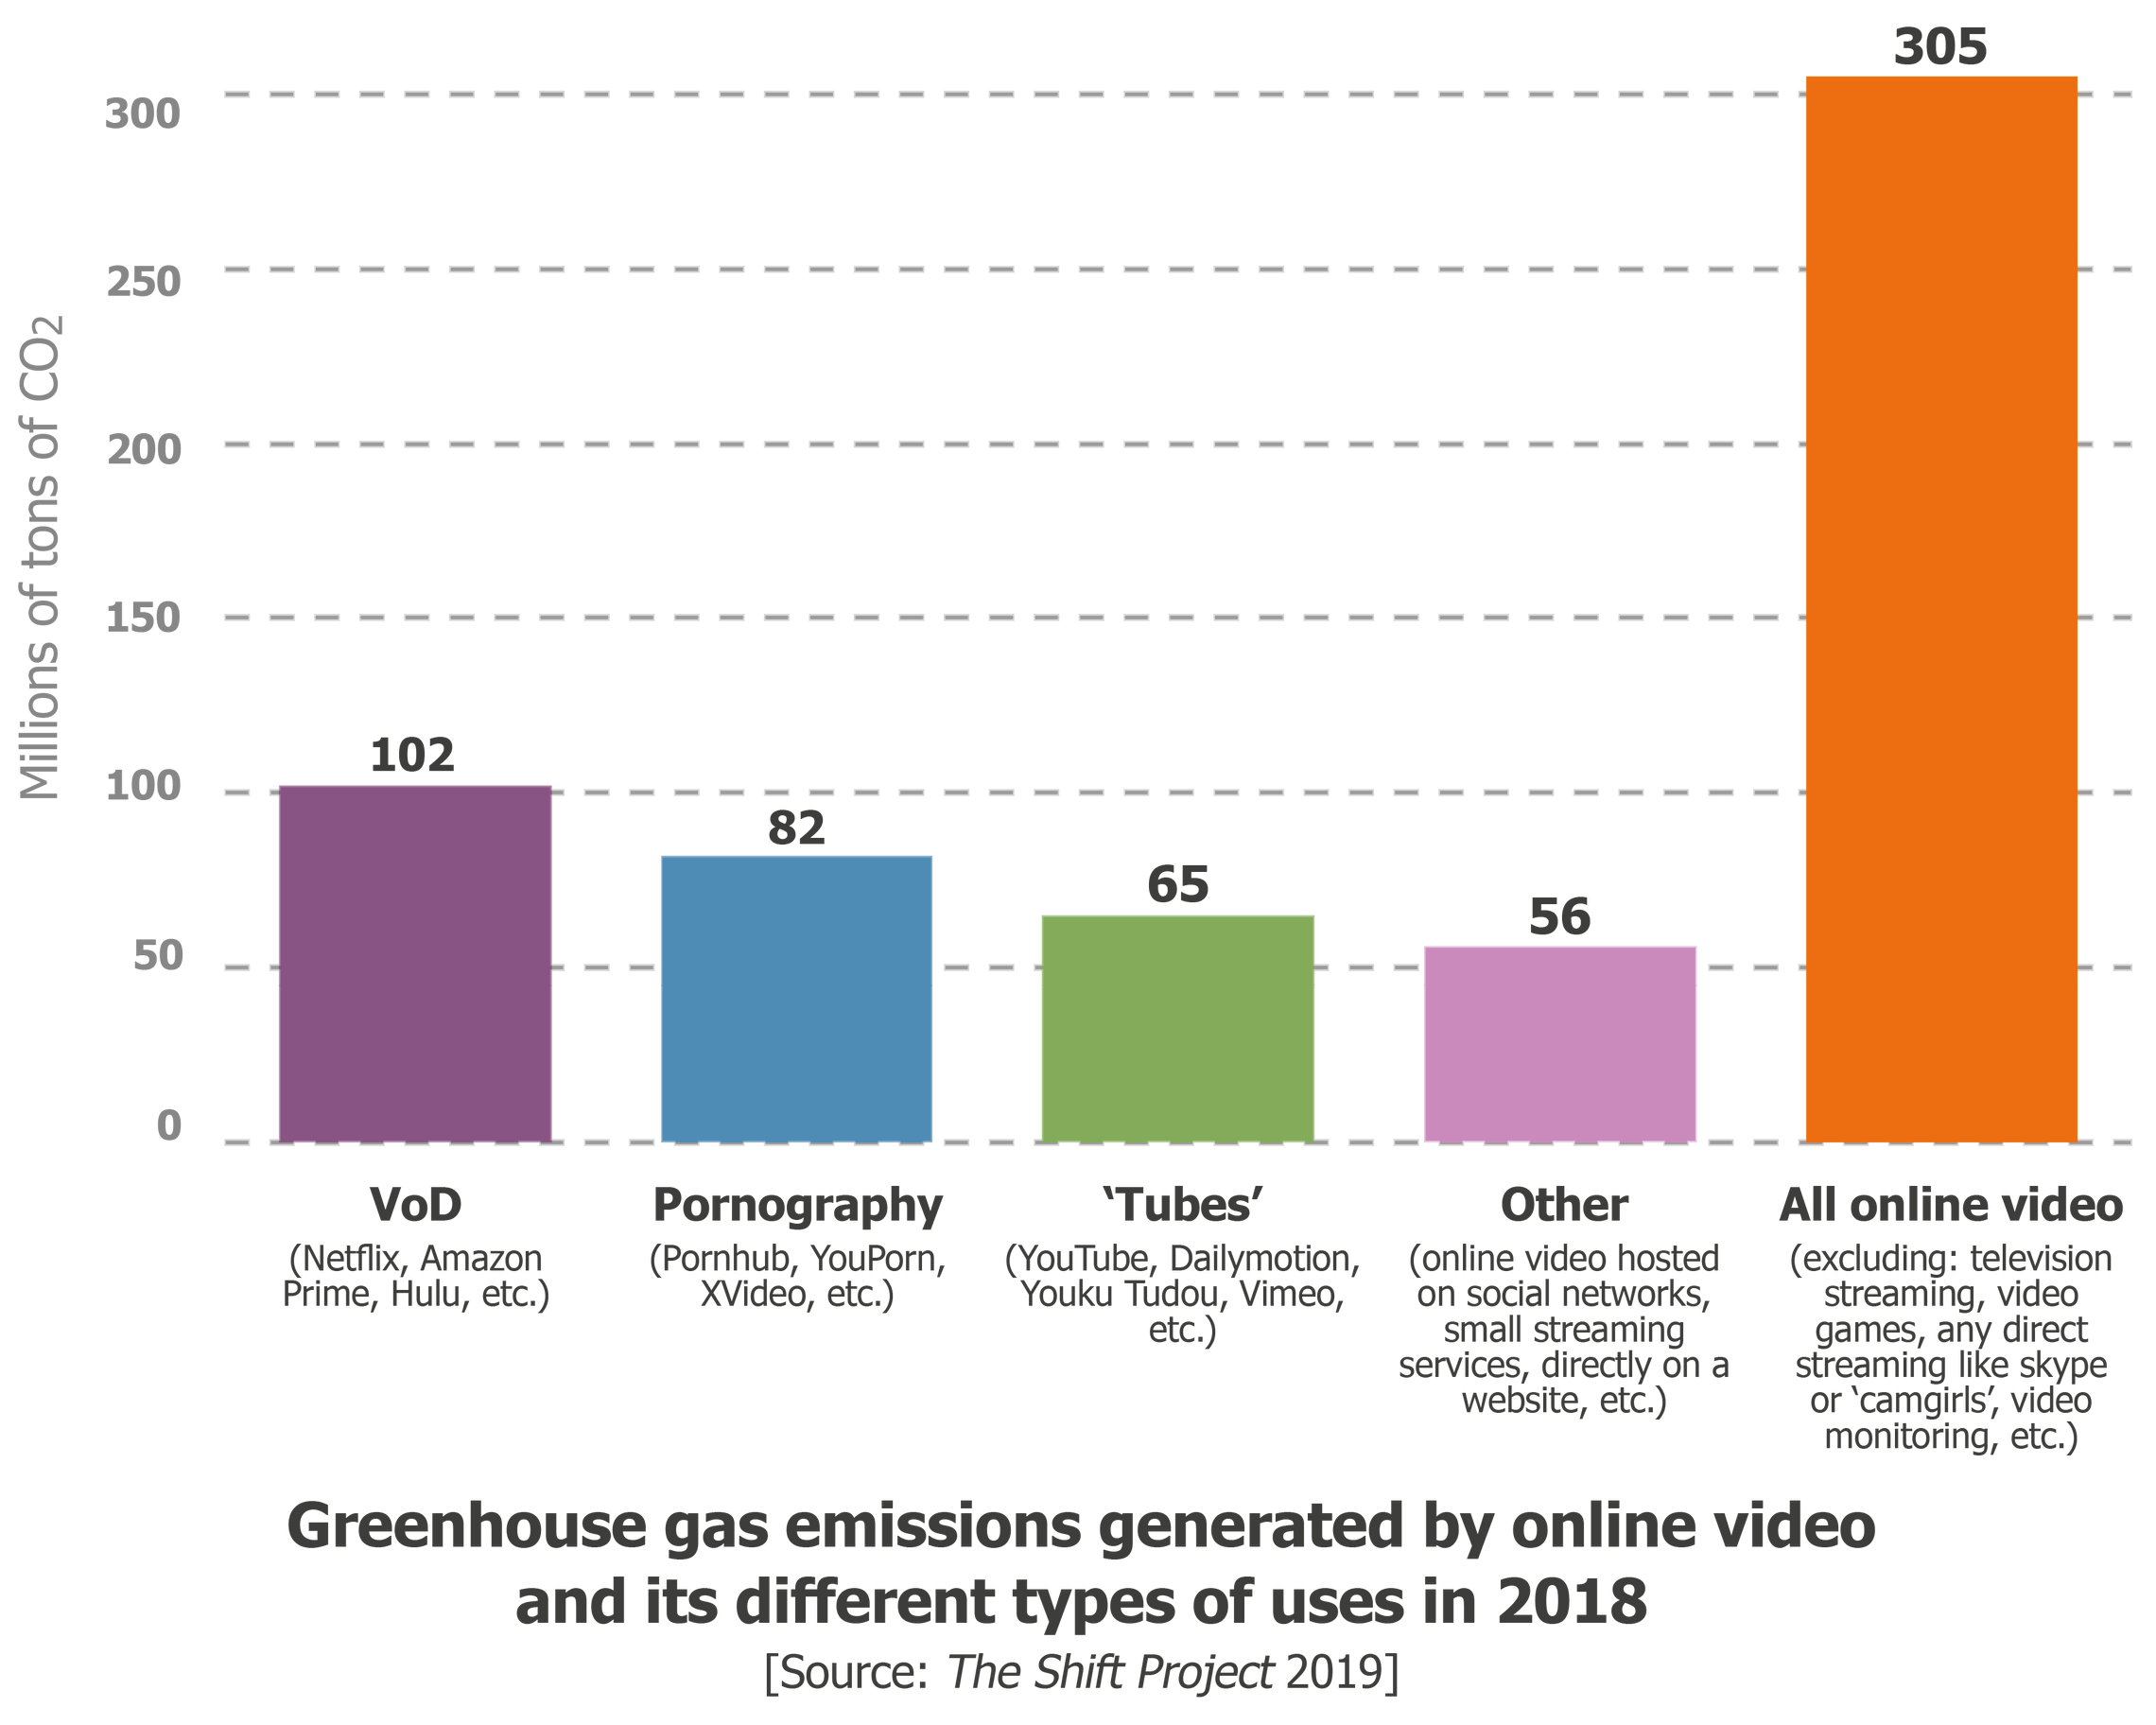 Online Porn Videos Produce as Much CO2 as a Small Country